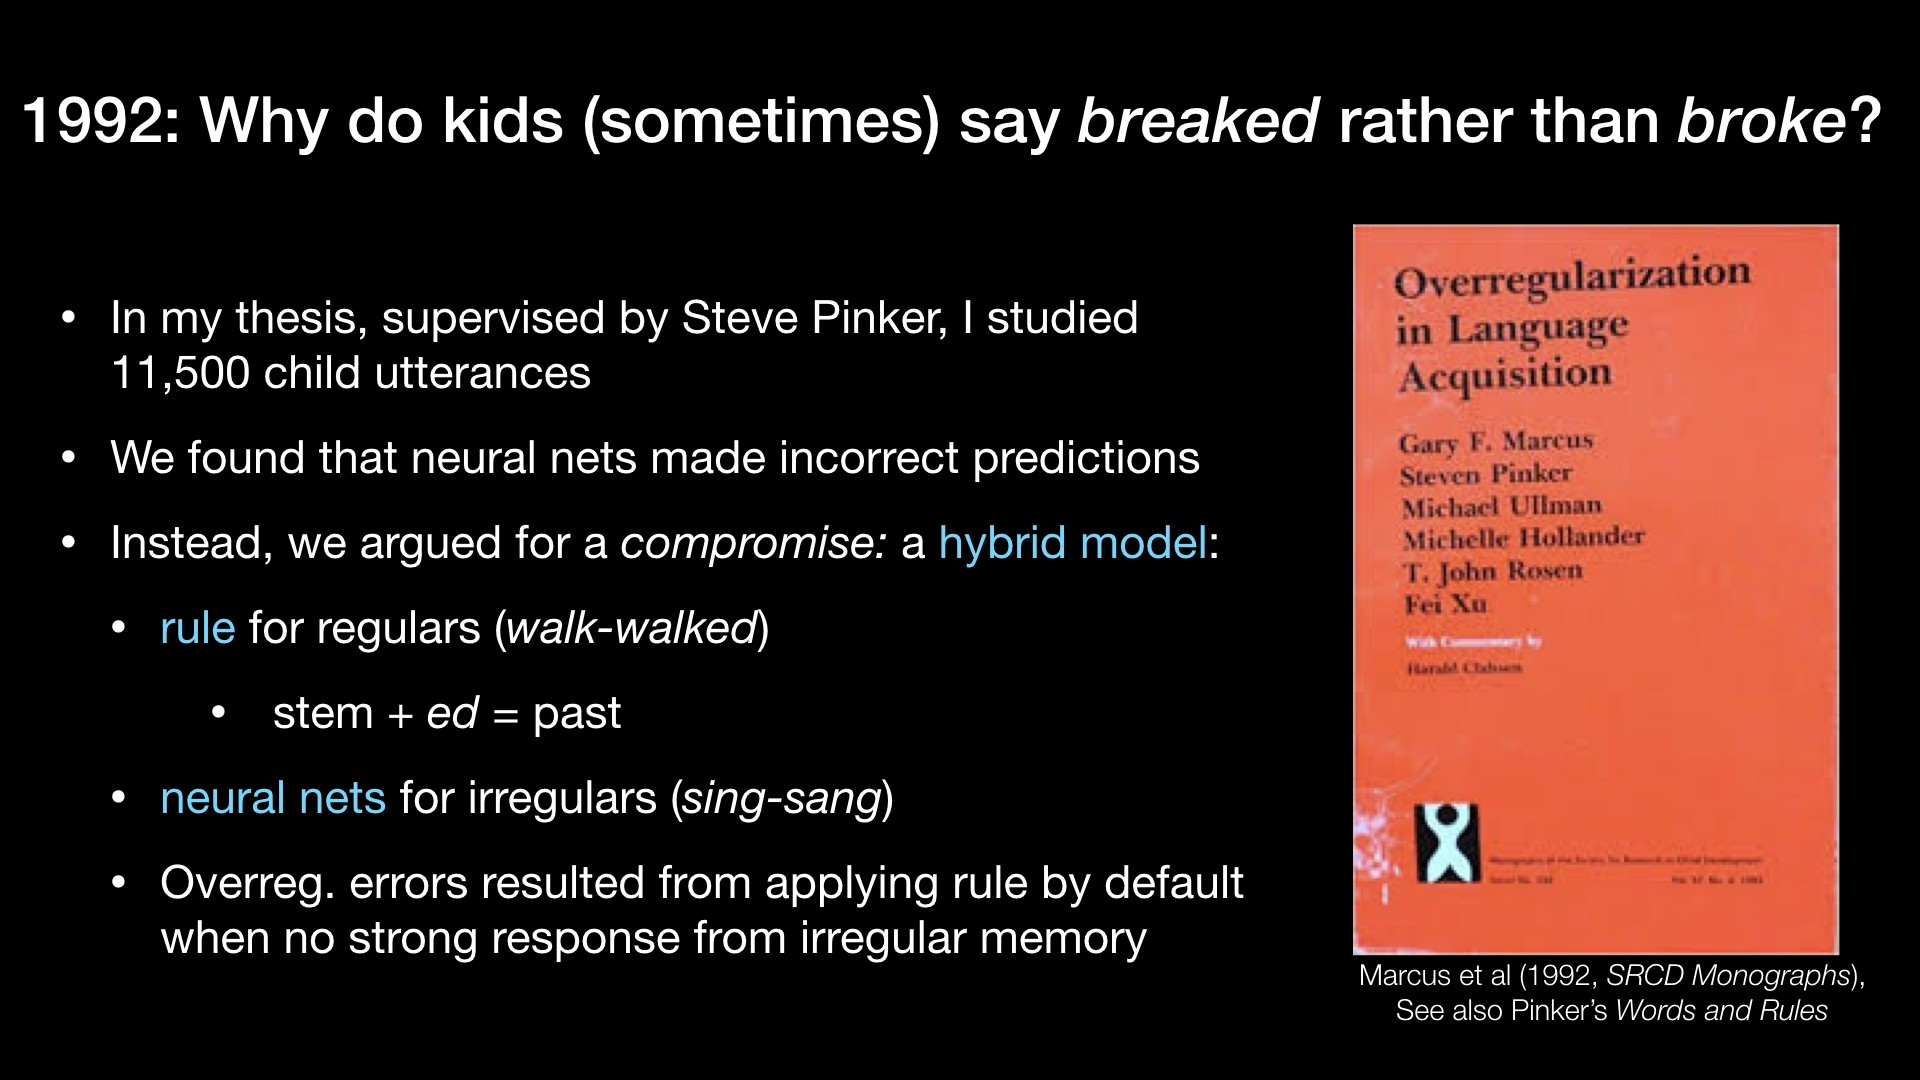 1992: Why do kids (sometimes) say breaked rather than broke?